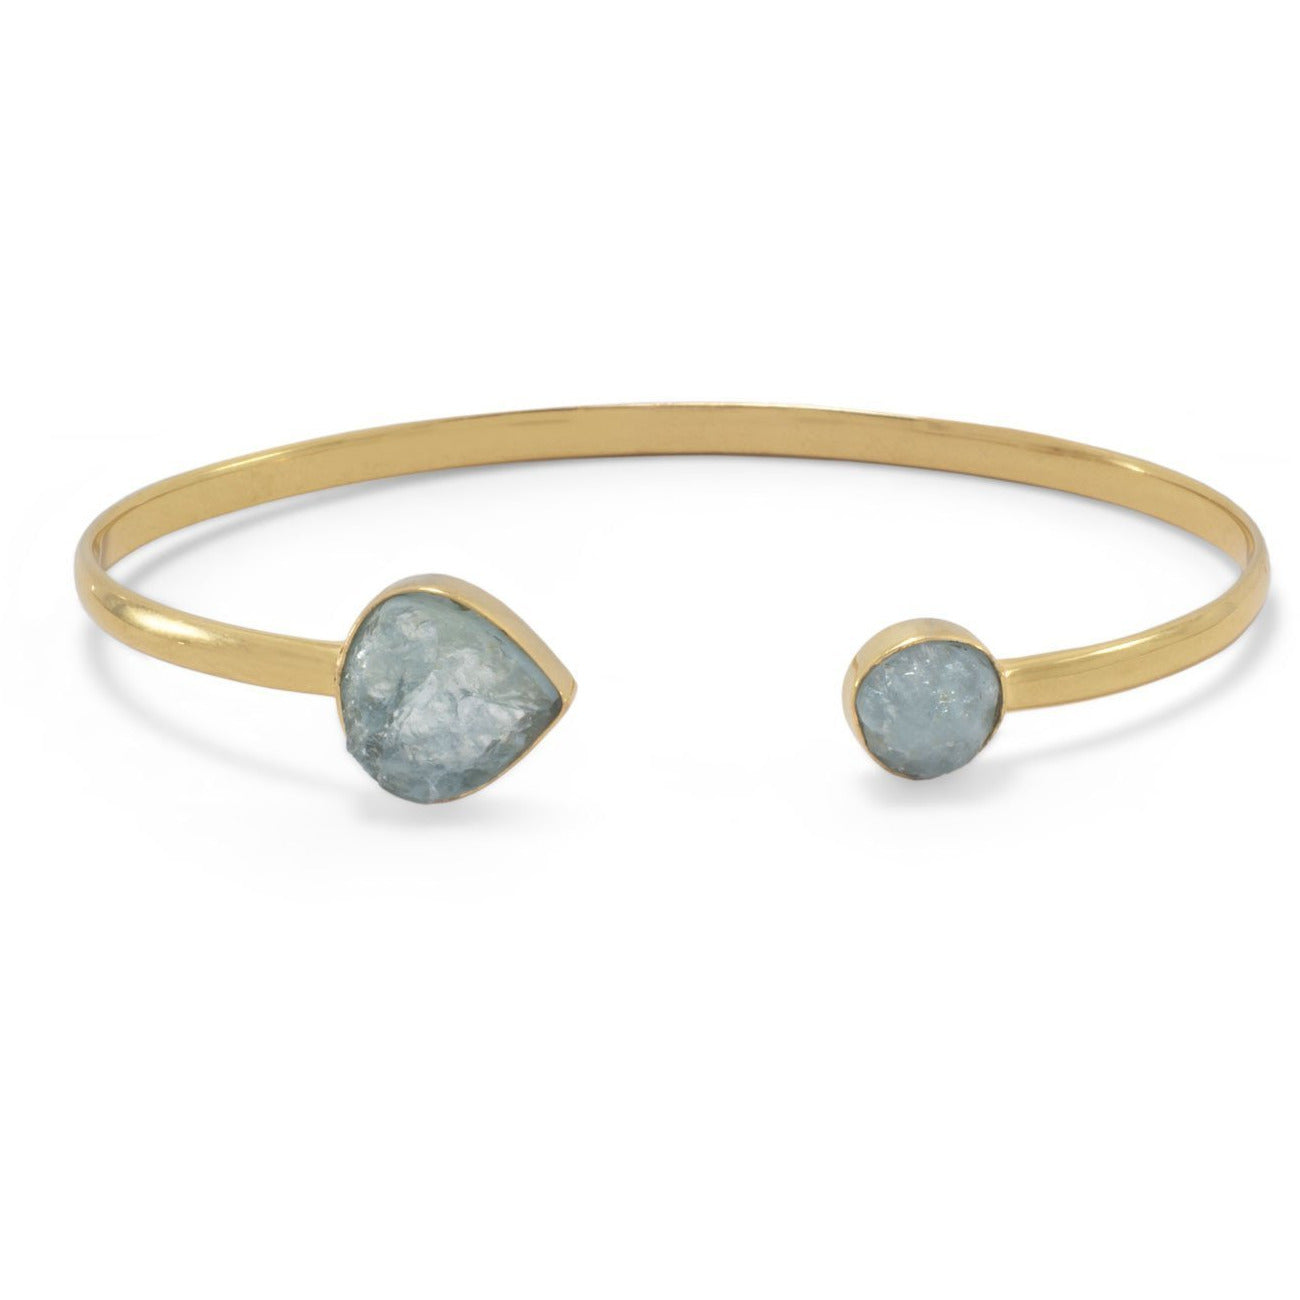 14K Gold Plated Aquamarine Open Cuff Bracelet